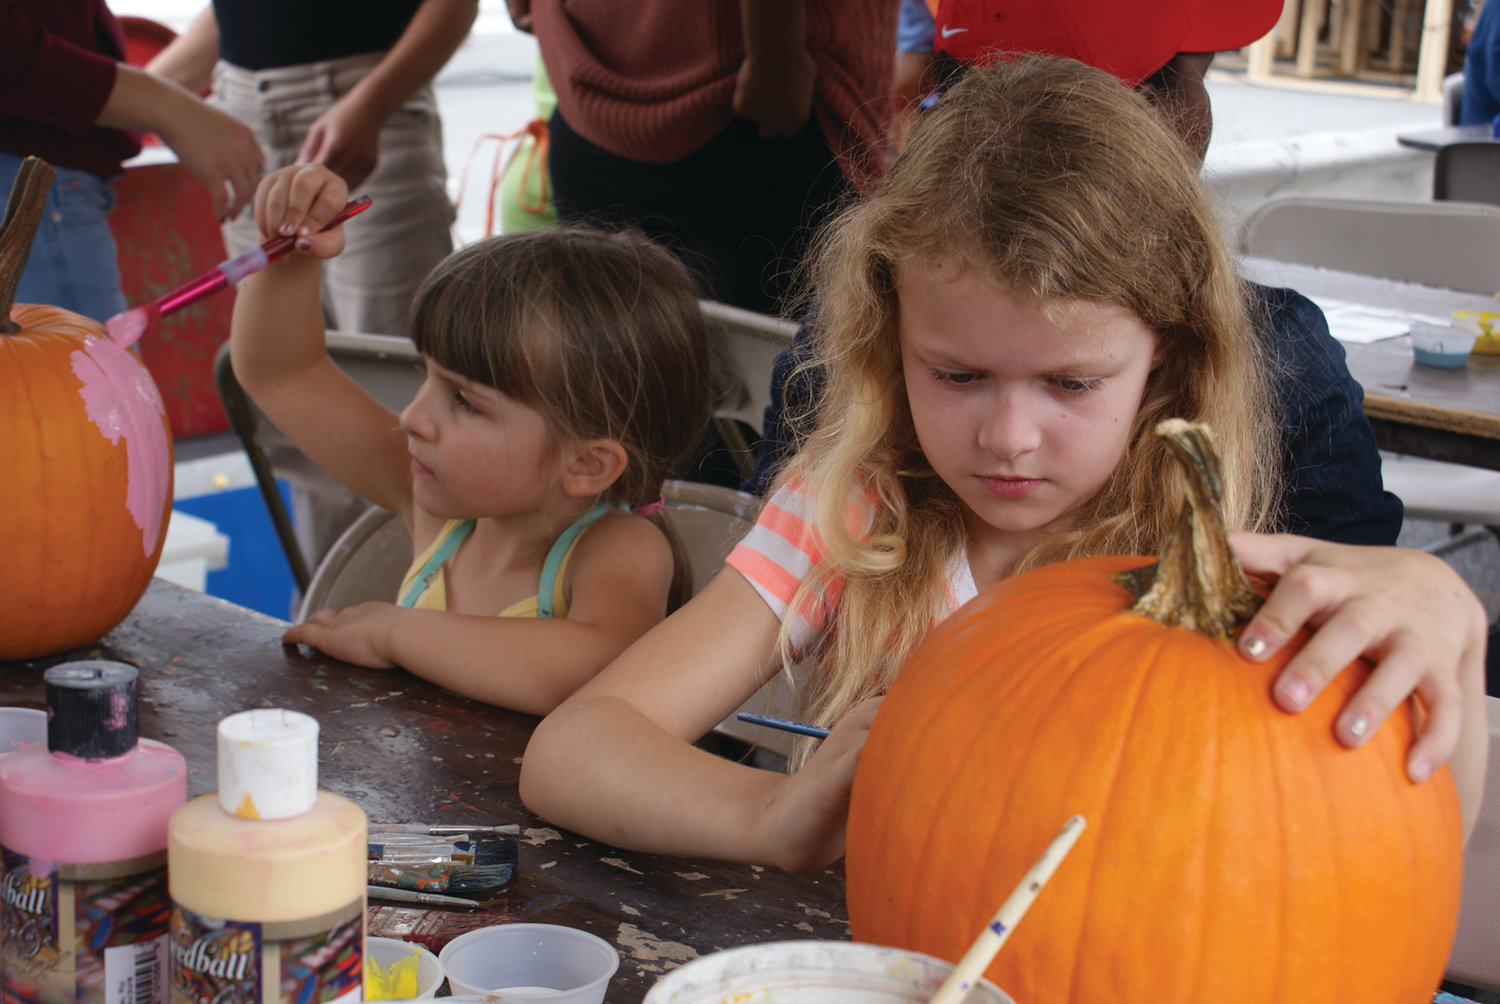 GREAT PUMPKINS: Children work on their entries for the pumpkin decorating contest during the Fall Out of Summer Arts Festival on Rolfe Square in this 2016 file photo. The contest will return during this year's festival on Sept. 22.